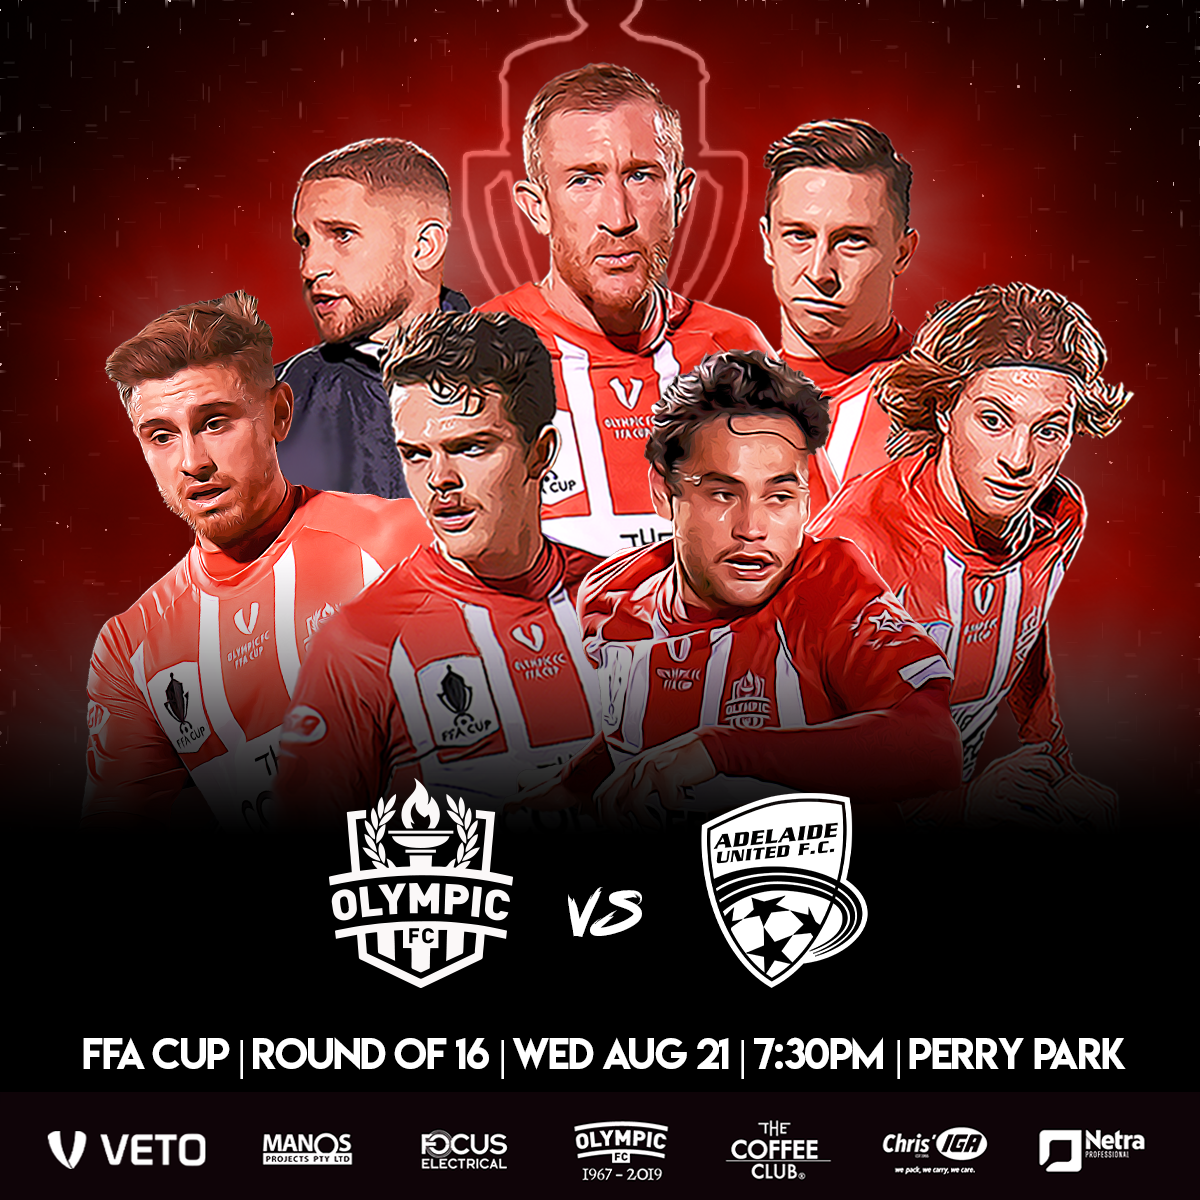 Buy your FFA Cup Round of 16 tickets